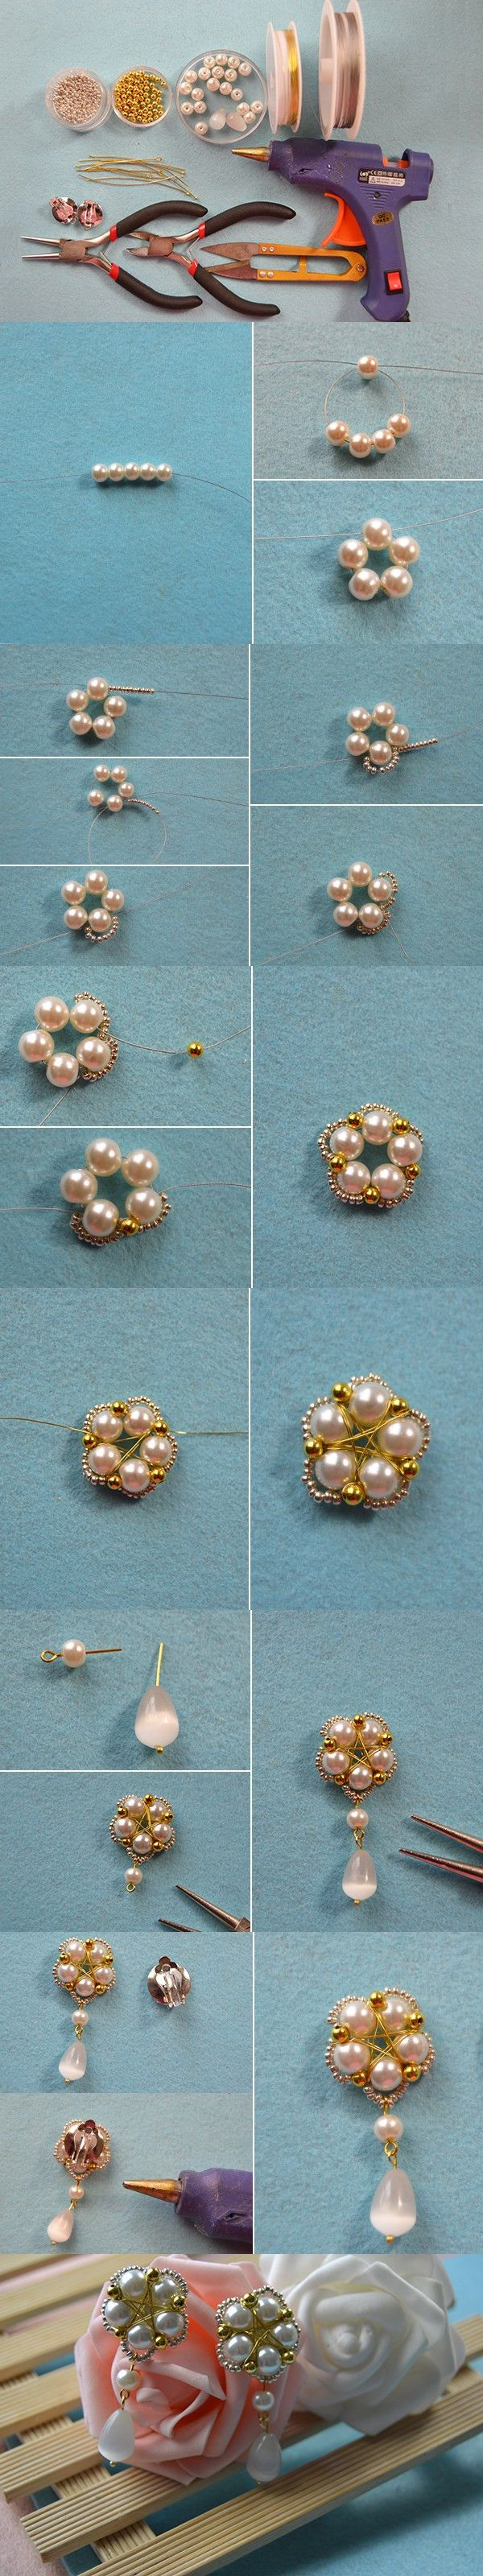 Tutorial On How To Make Earrings With Beads And Wiresa Pair Of Flower  Shaped